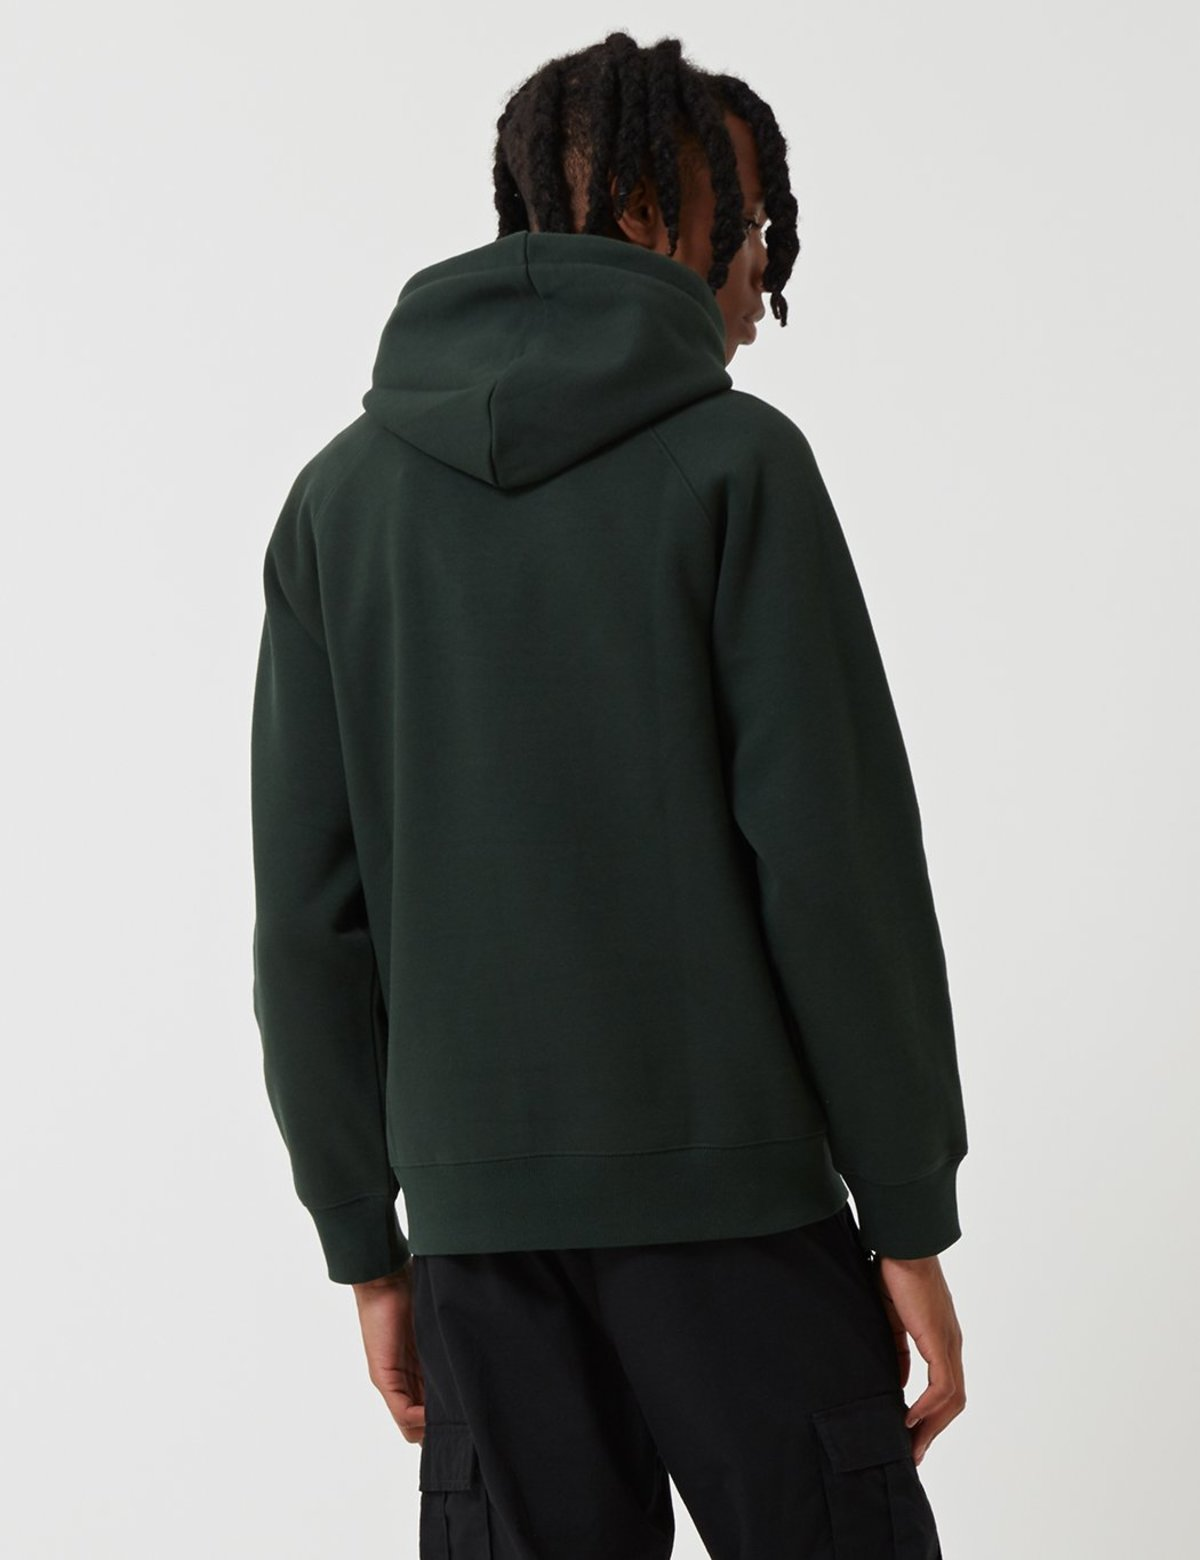 Loden Green//White in S,M,L,XL Carhartt Hooded Chase Sweatshirt Pullover